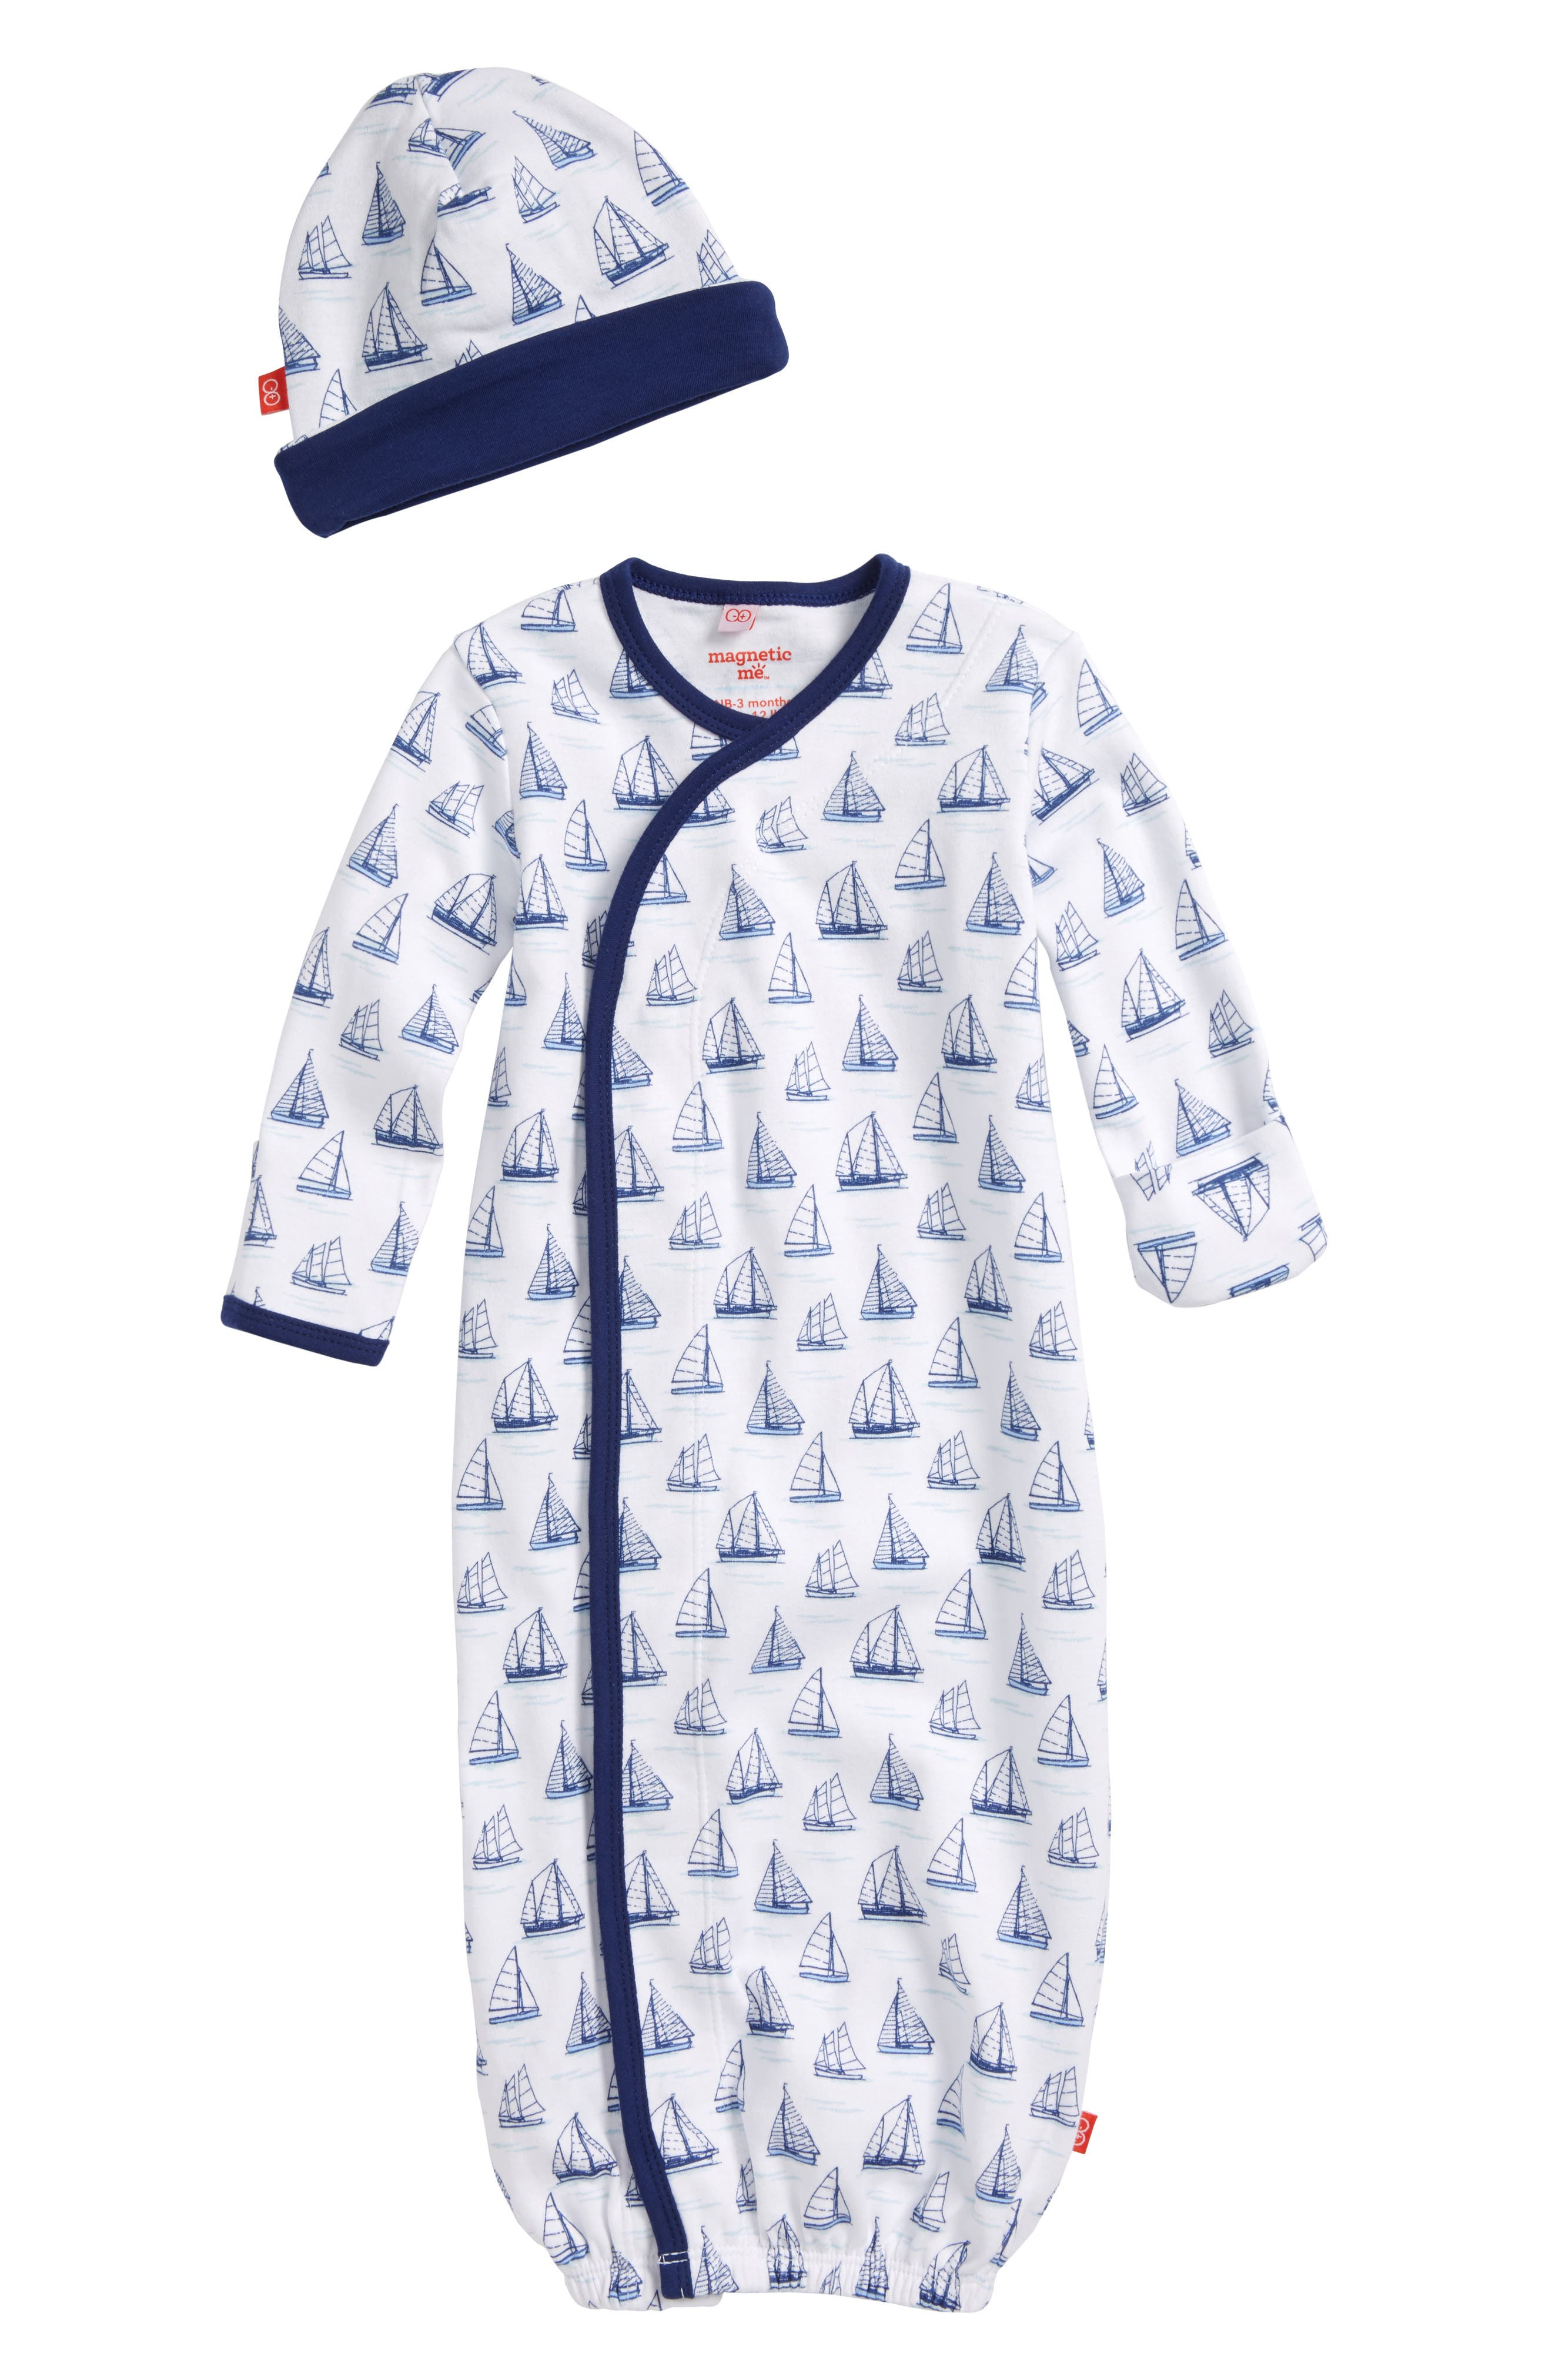 Main Image - Magnetic Me Tall Ships Print Gown & Hat Set (Baby)